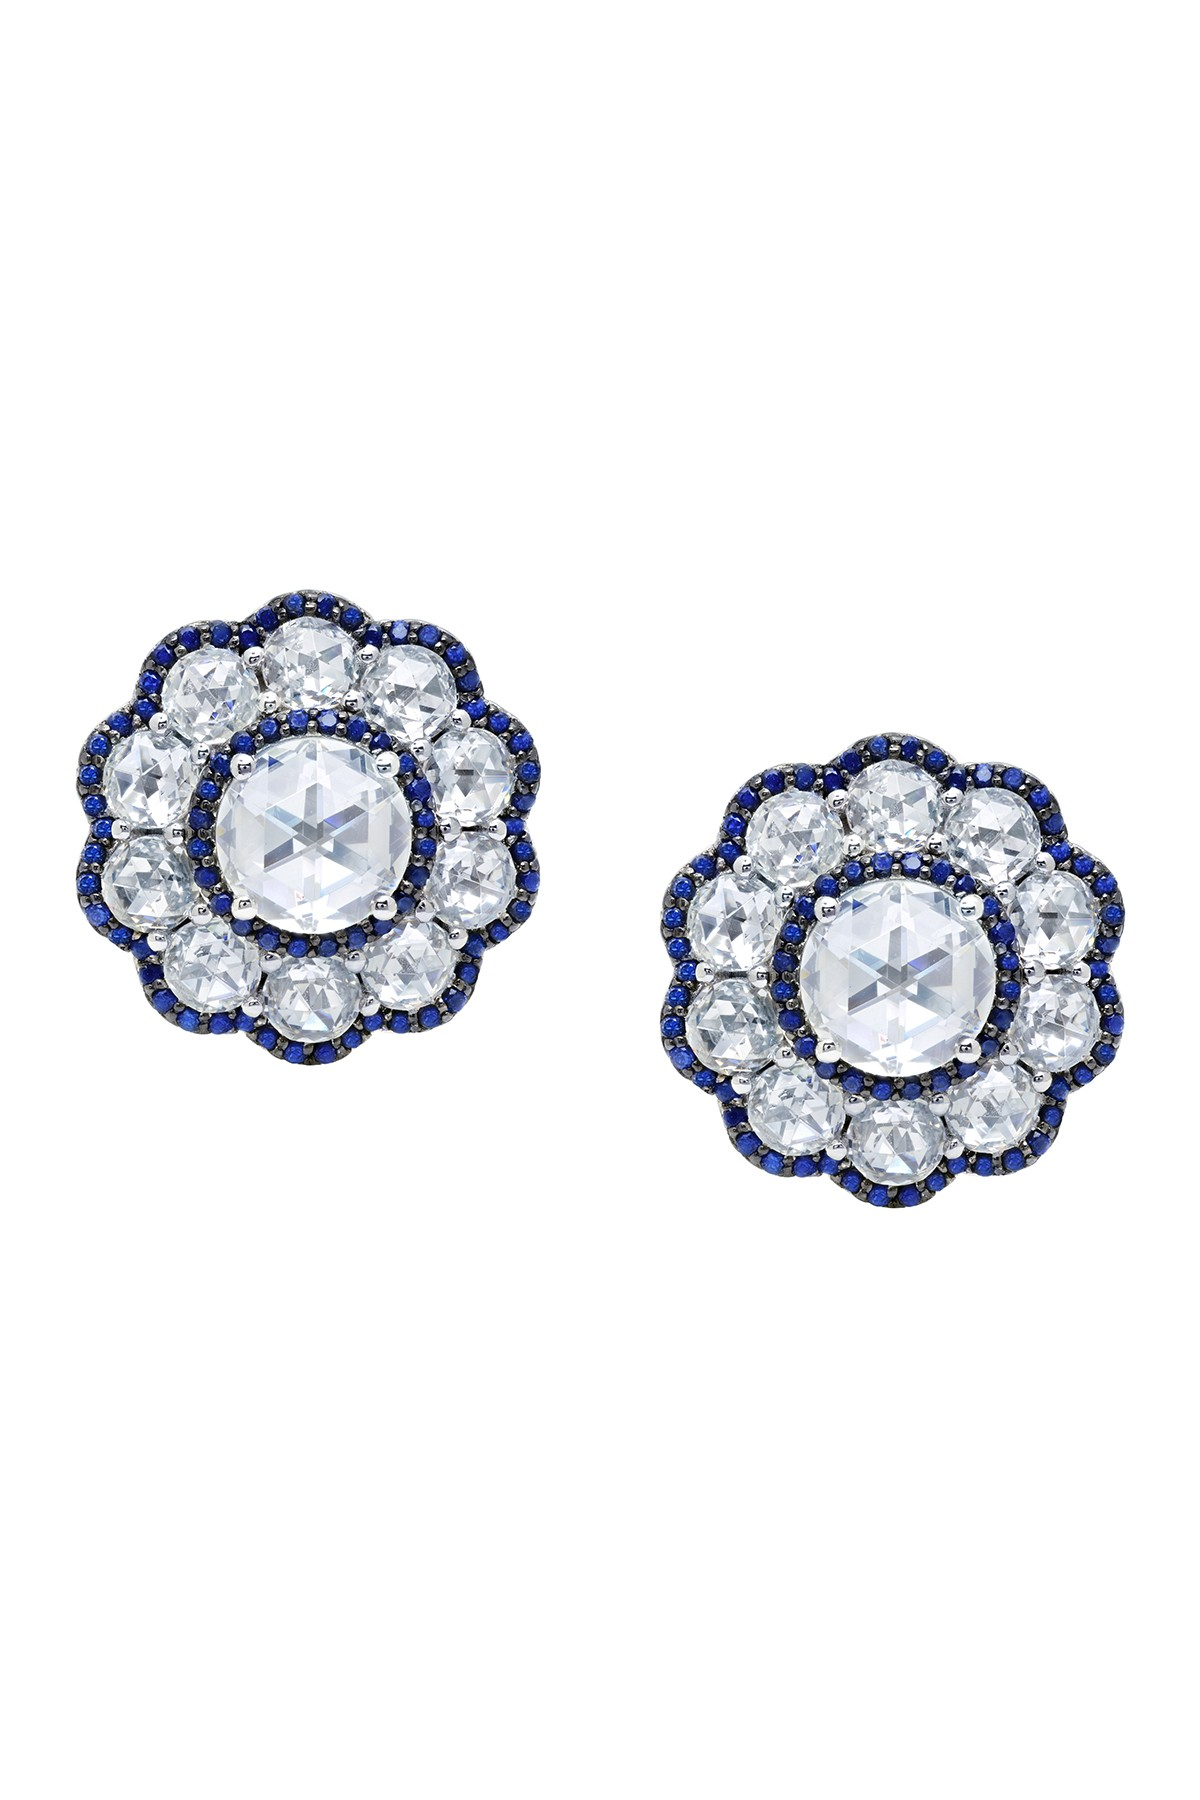 a12ddb589 LaFonn - Platinum Plated Sterling Silver Simulated Diamond & Lab-Grown  Sapphire Heritage Flower Stud Earrings is now 74% off. Free Shipping on  orders over ...